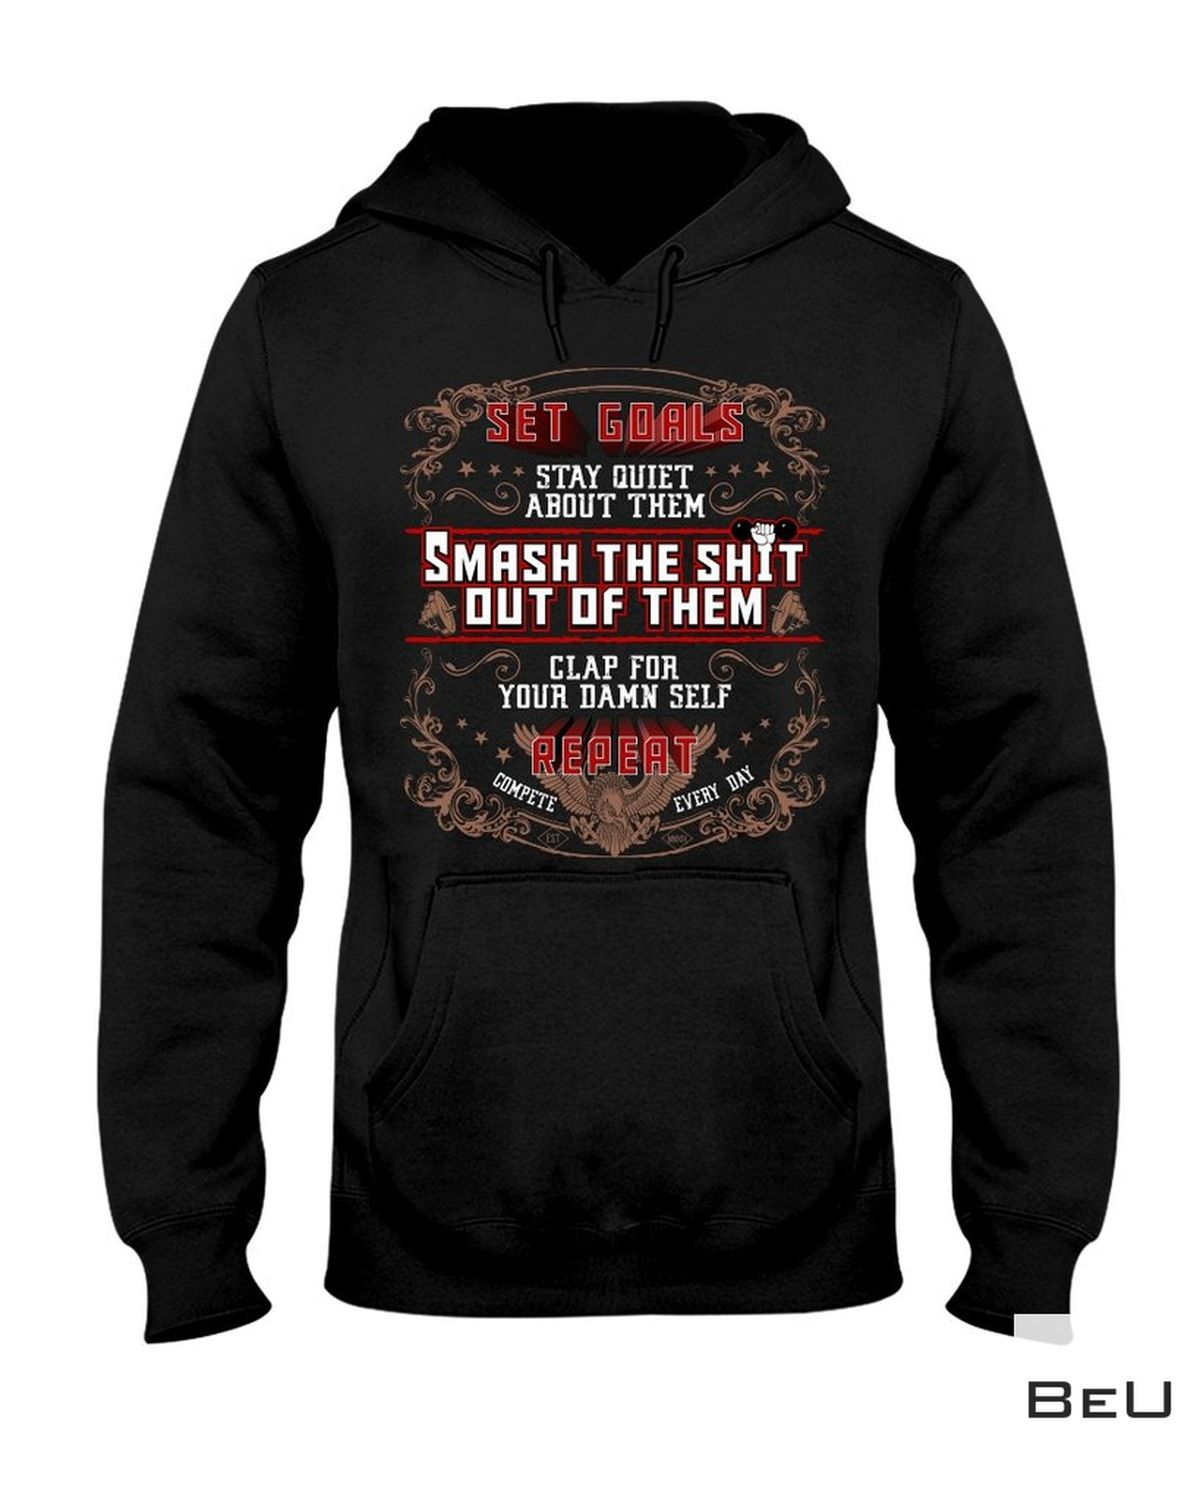 Set Goals Stay Quiet About Them Smash The Shit Out Of Them Shirt z